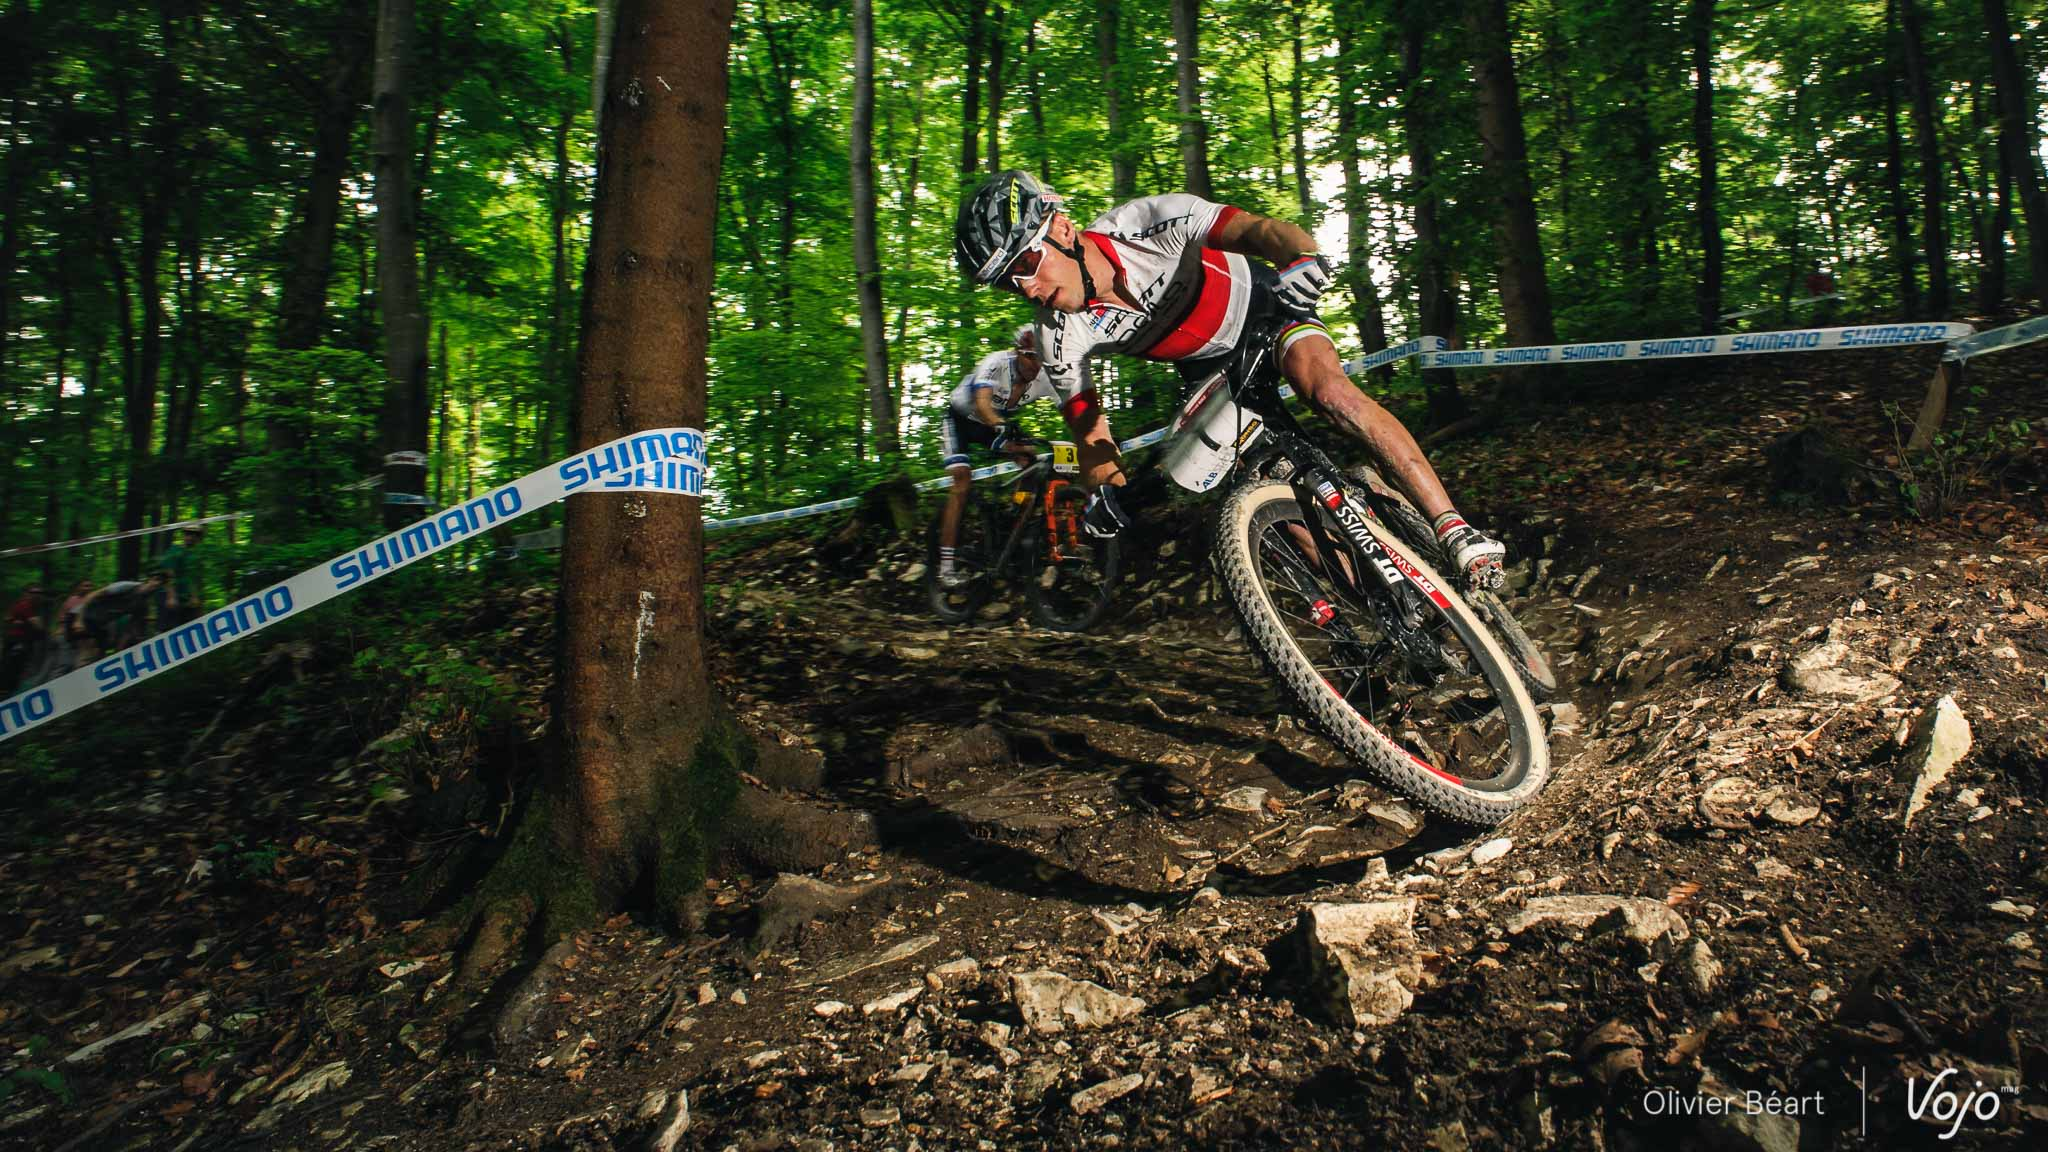 Nino_Schurter_Interview_Scott_Spark_Scale_Albstadt_Copyright_OBeart_VojoMag-7